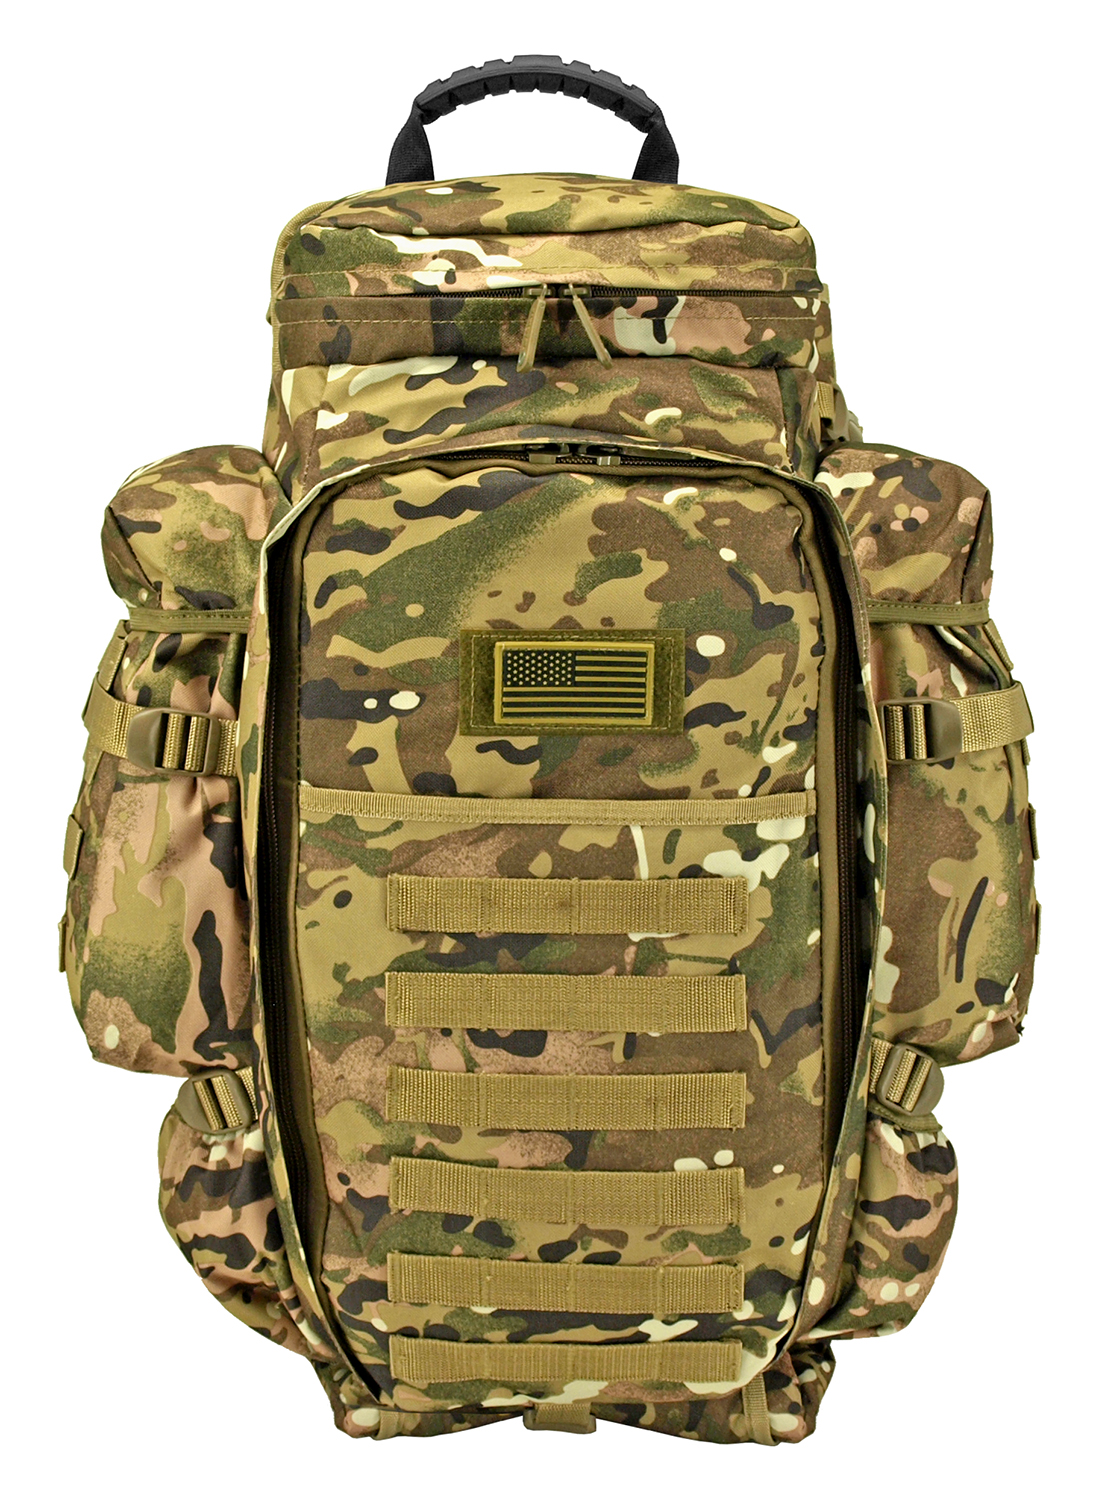 East West 9.11 Tactical Full Gear Rifle Backpack - Multicam